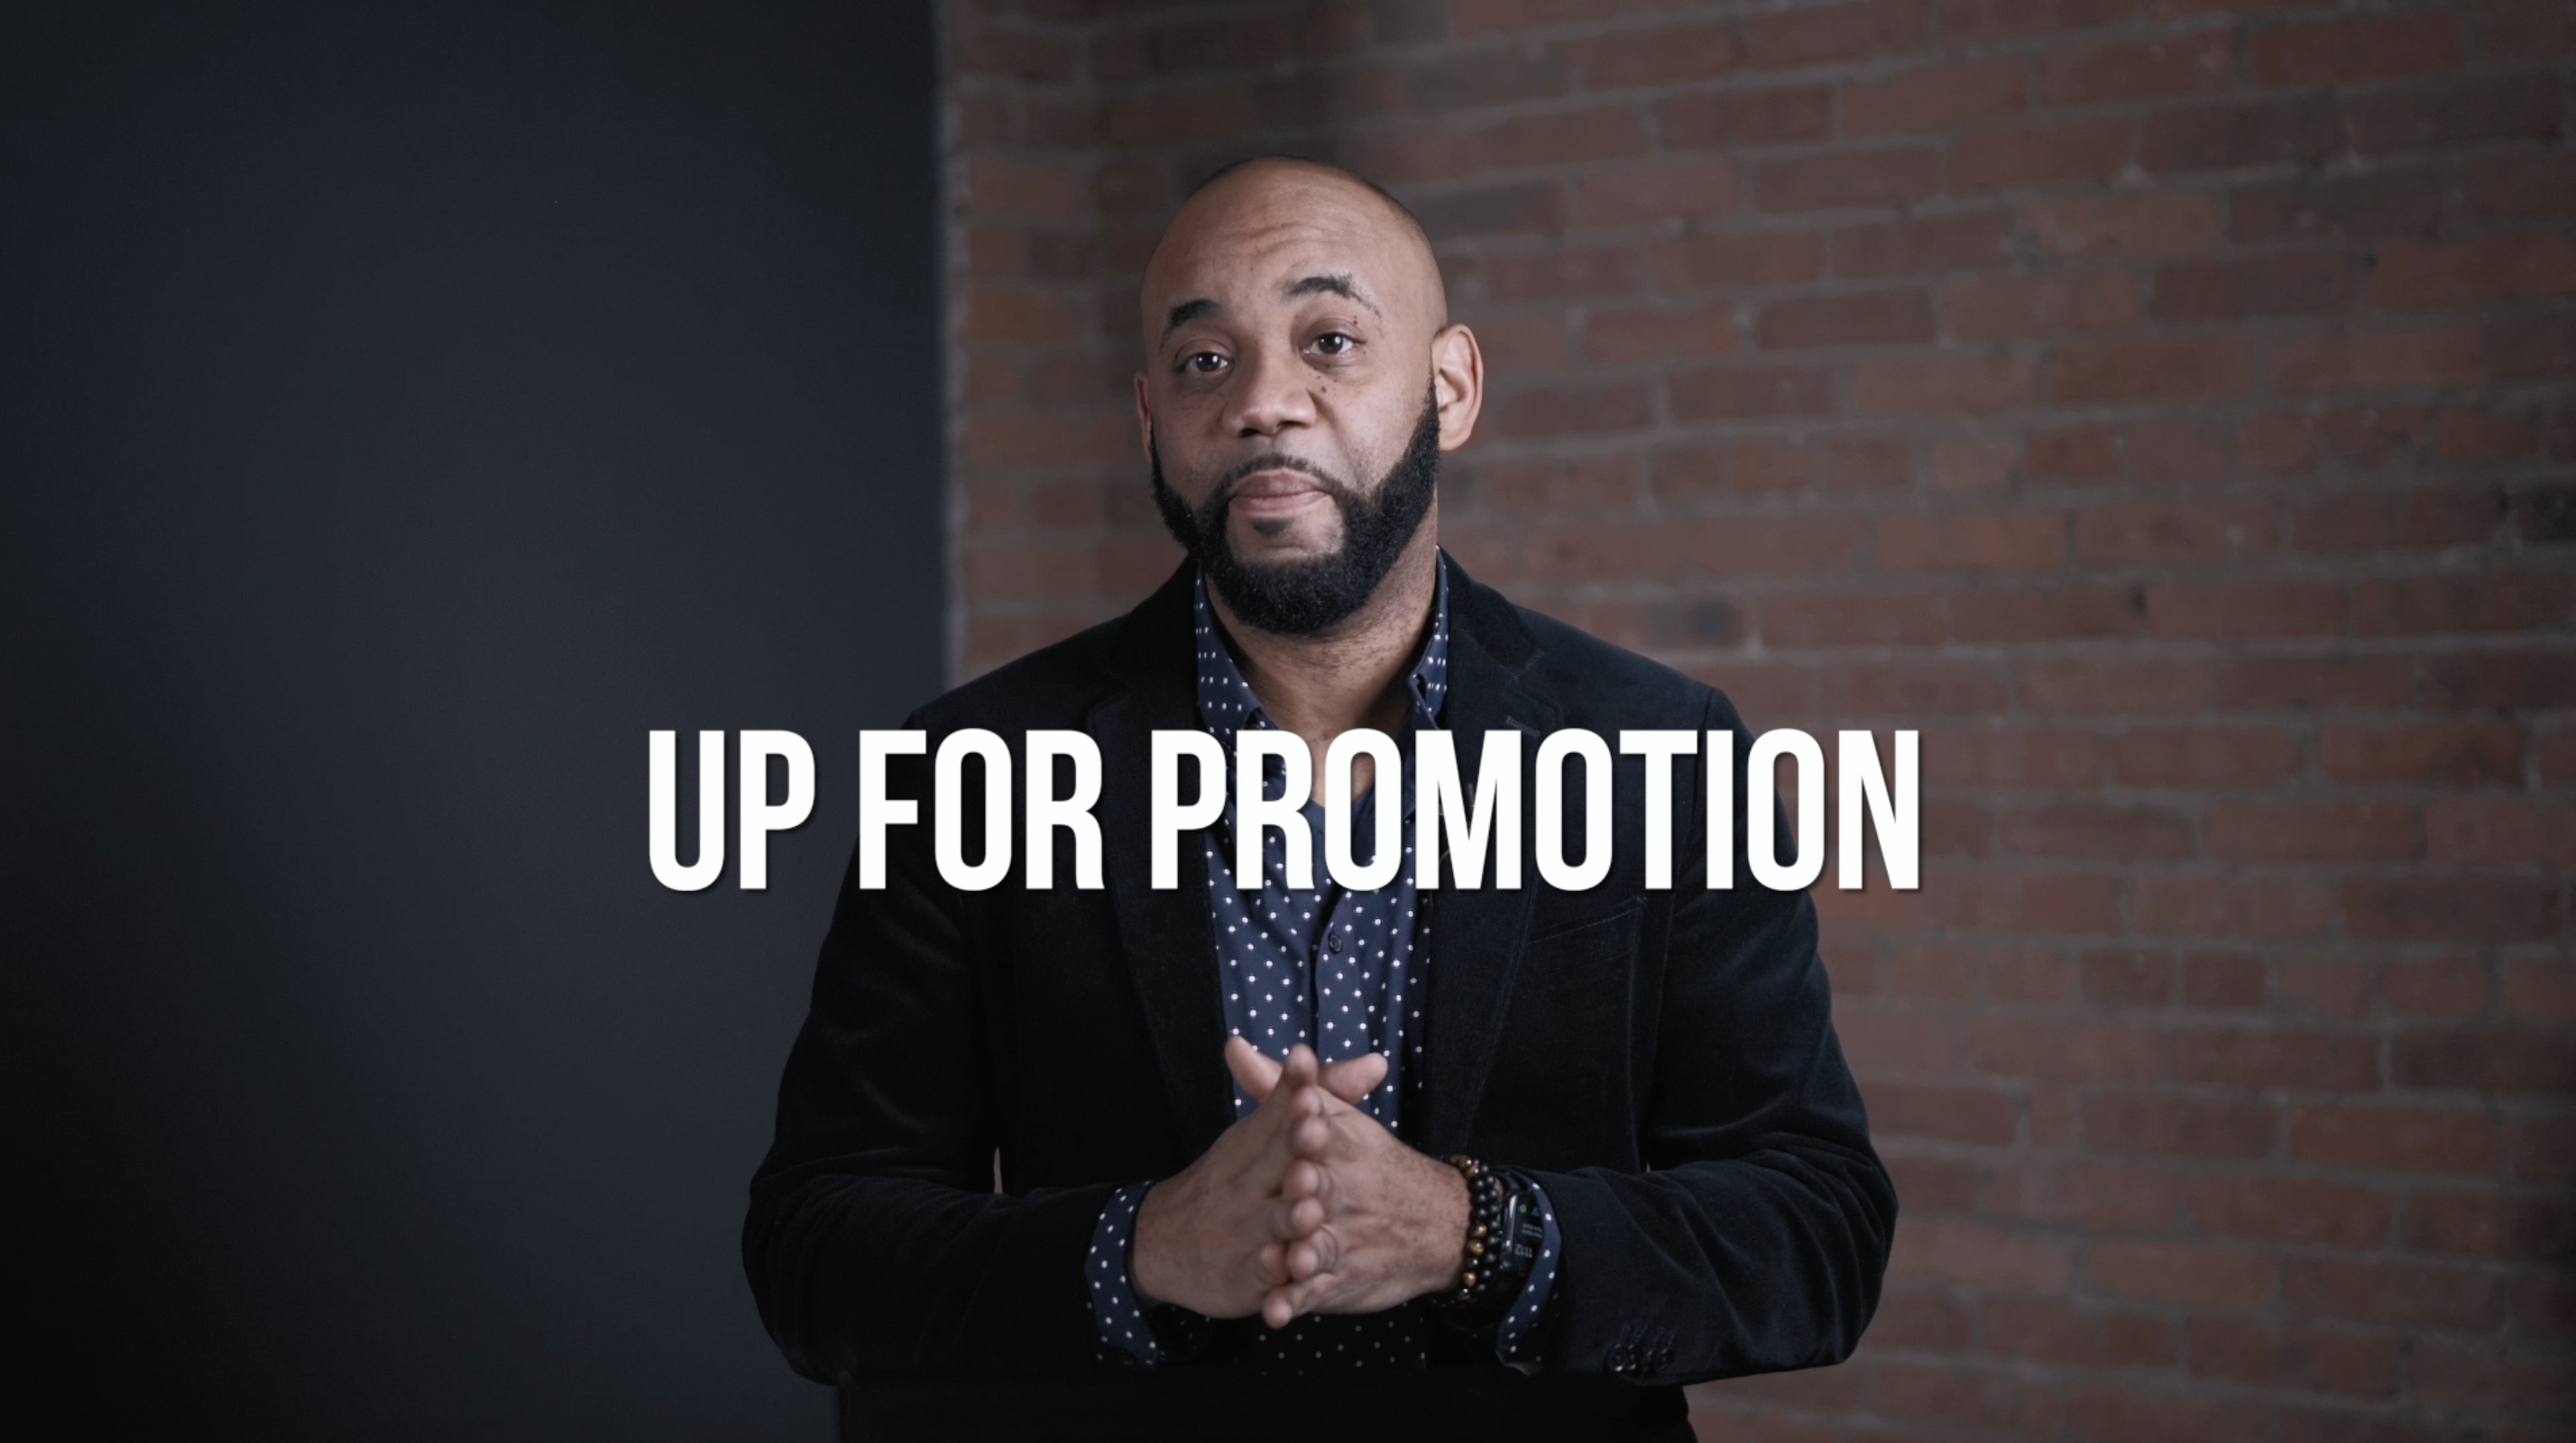 Up For Promotion | 1 Samuel 3:-21